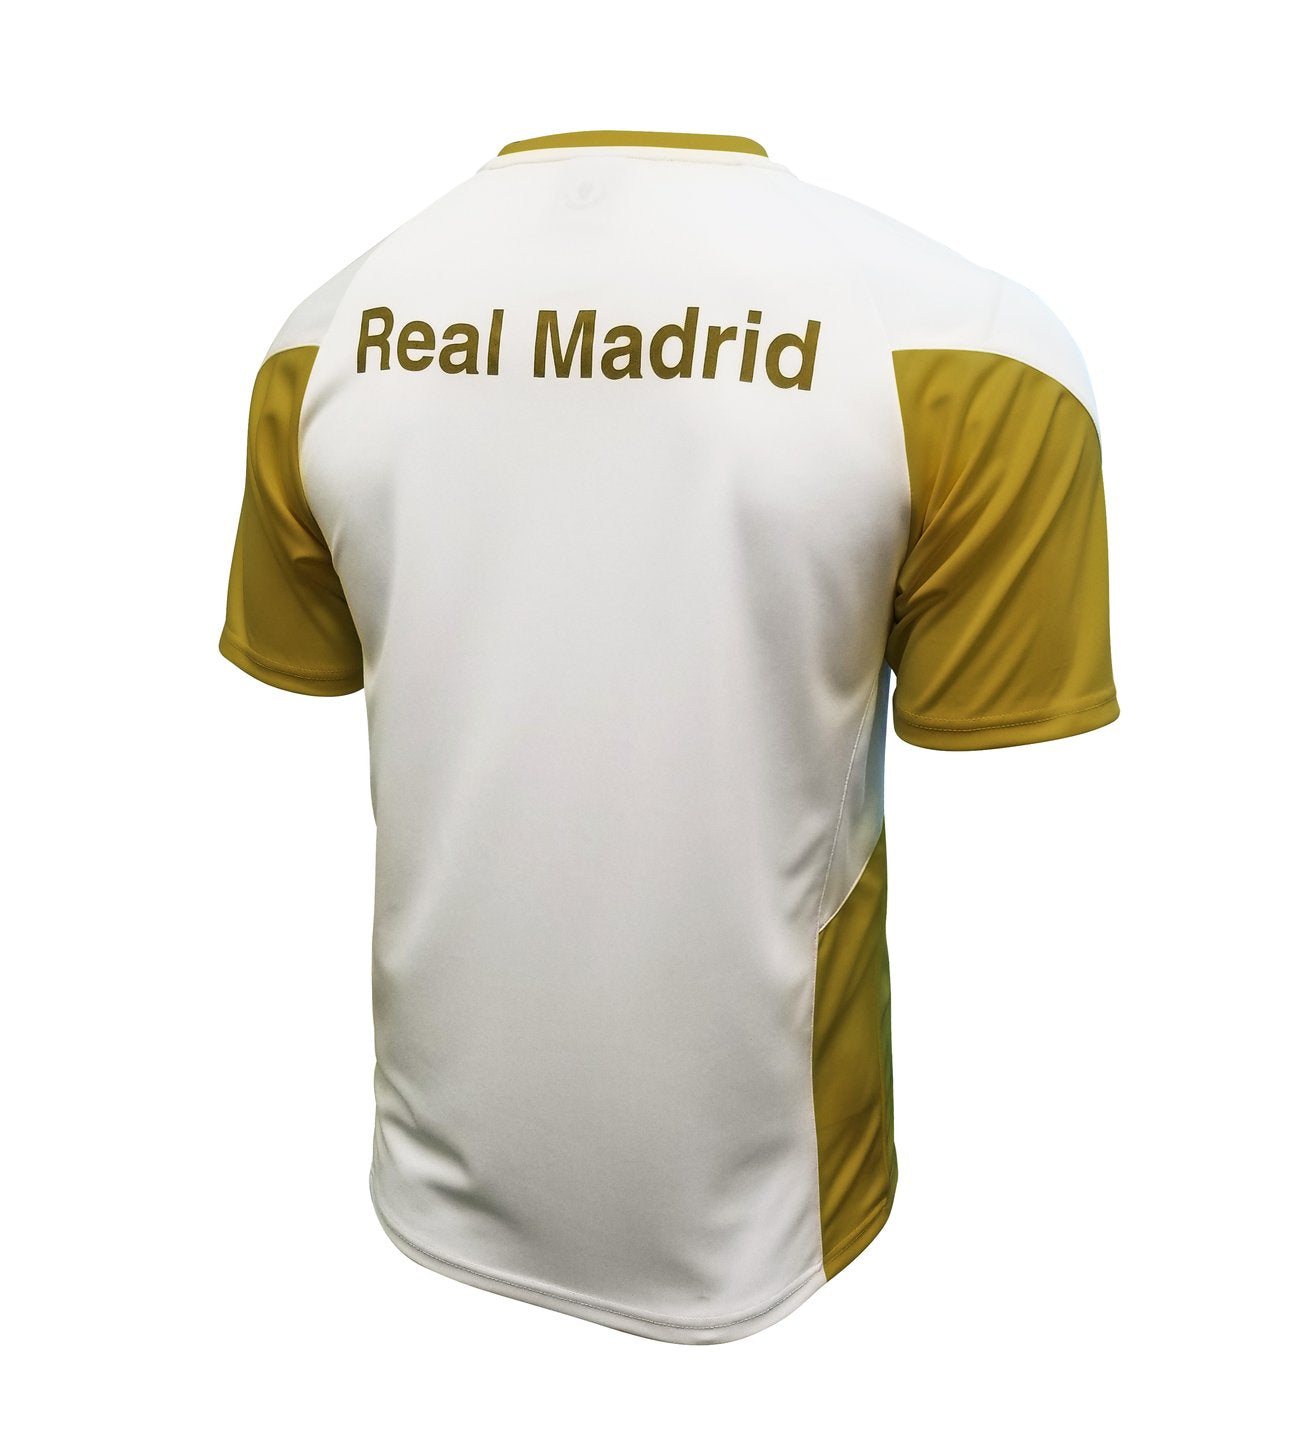 Real Madrid Ultimate Fan Pack by Icon Sports